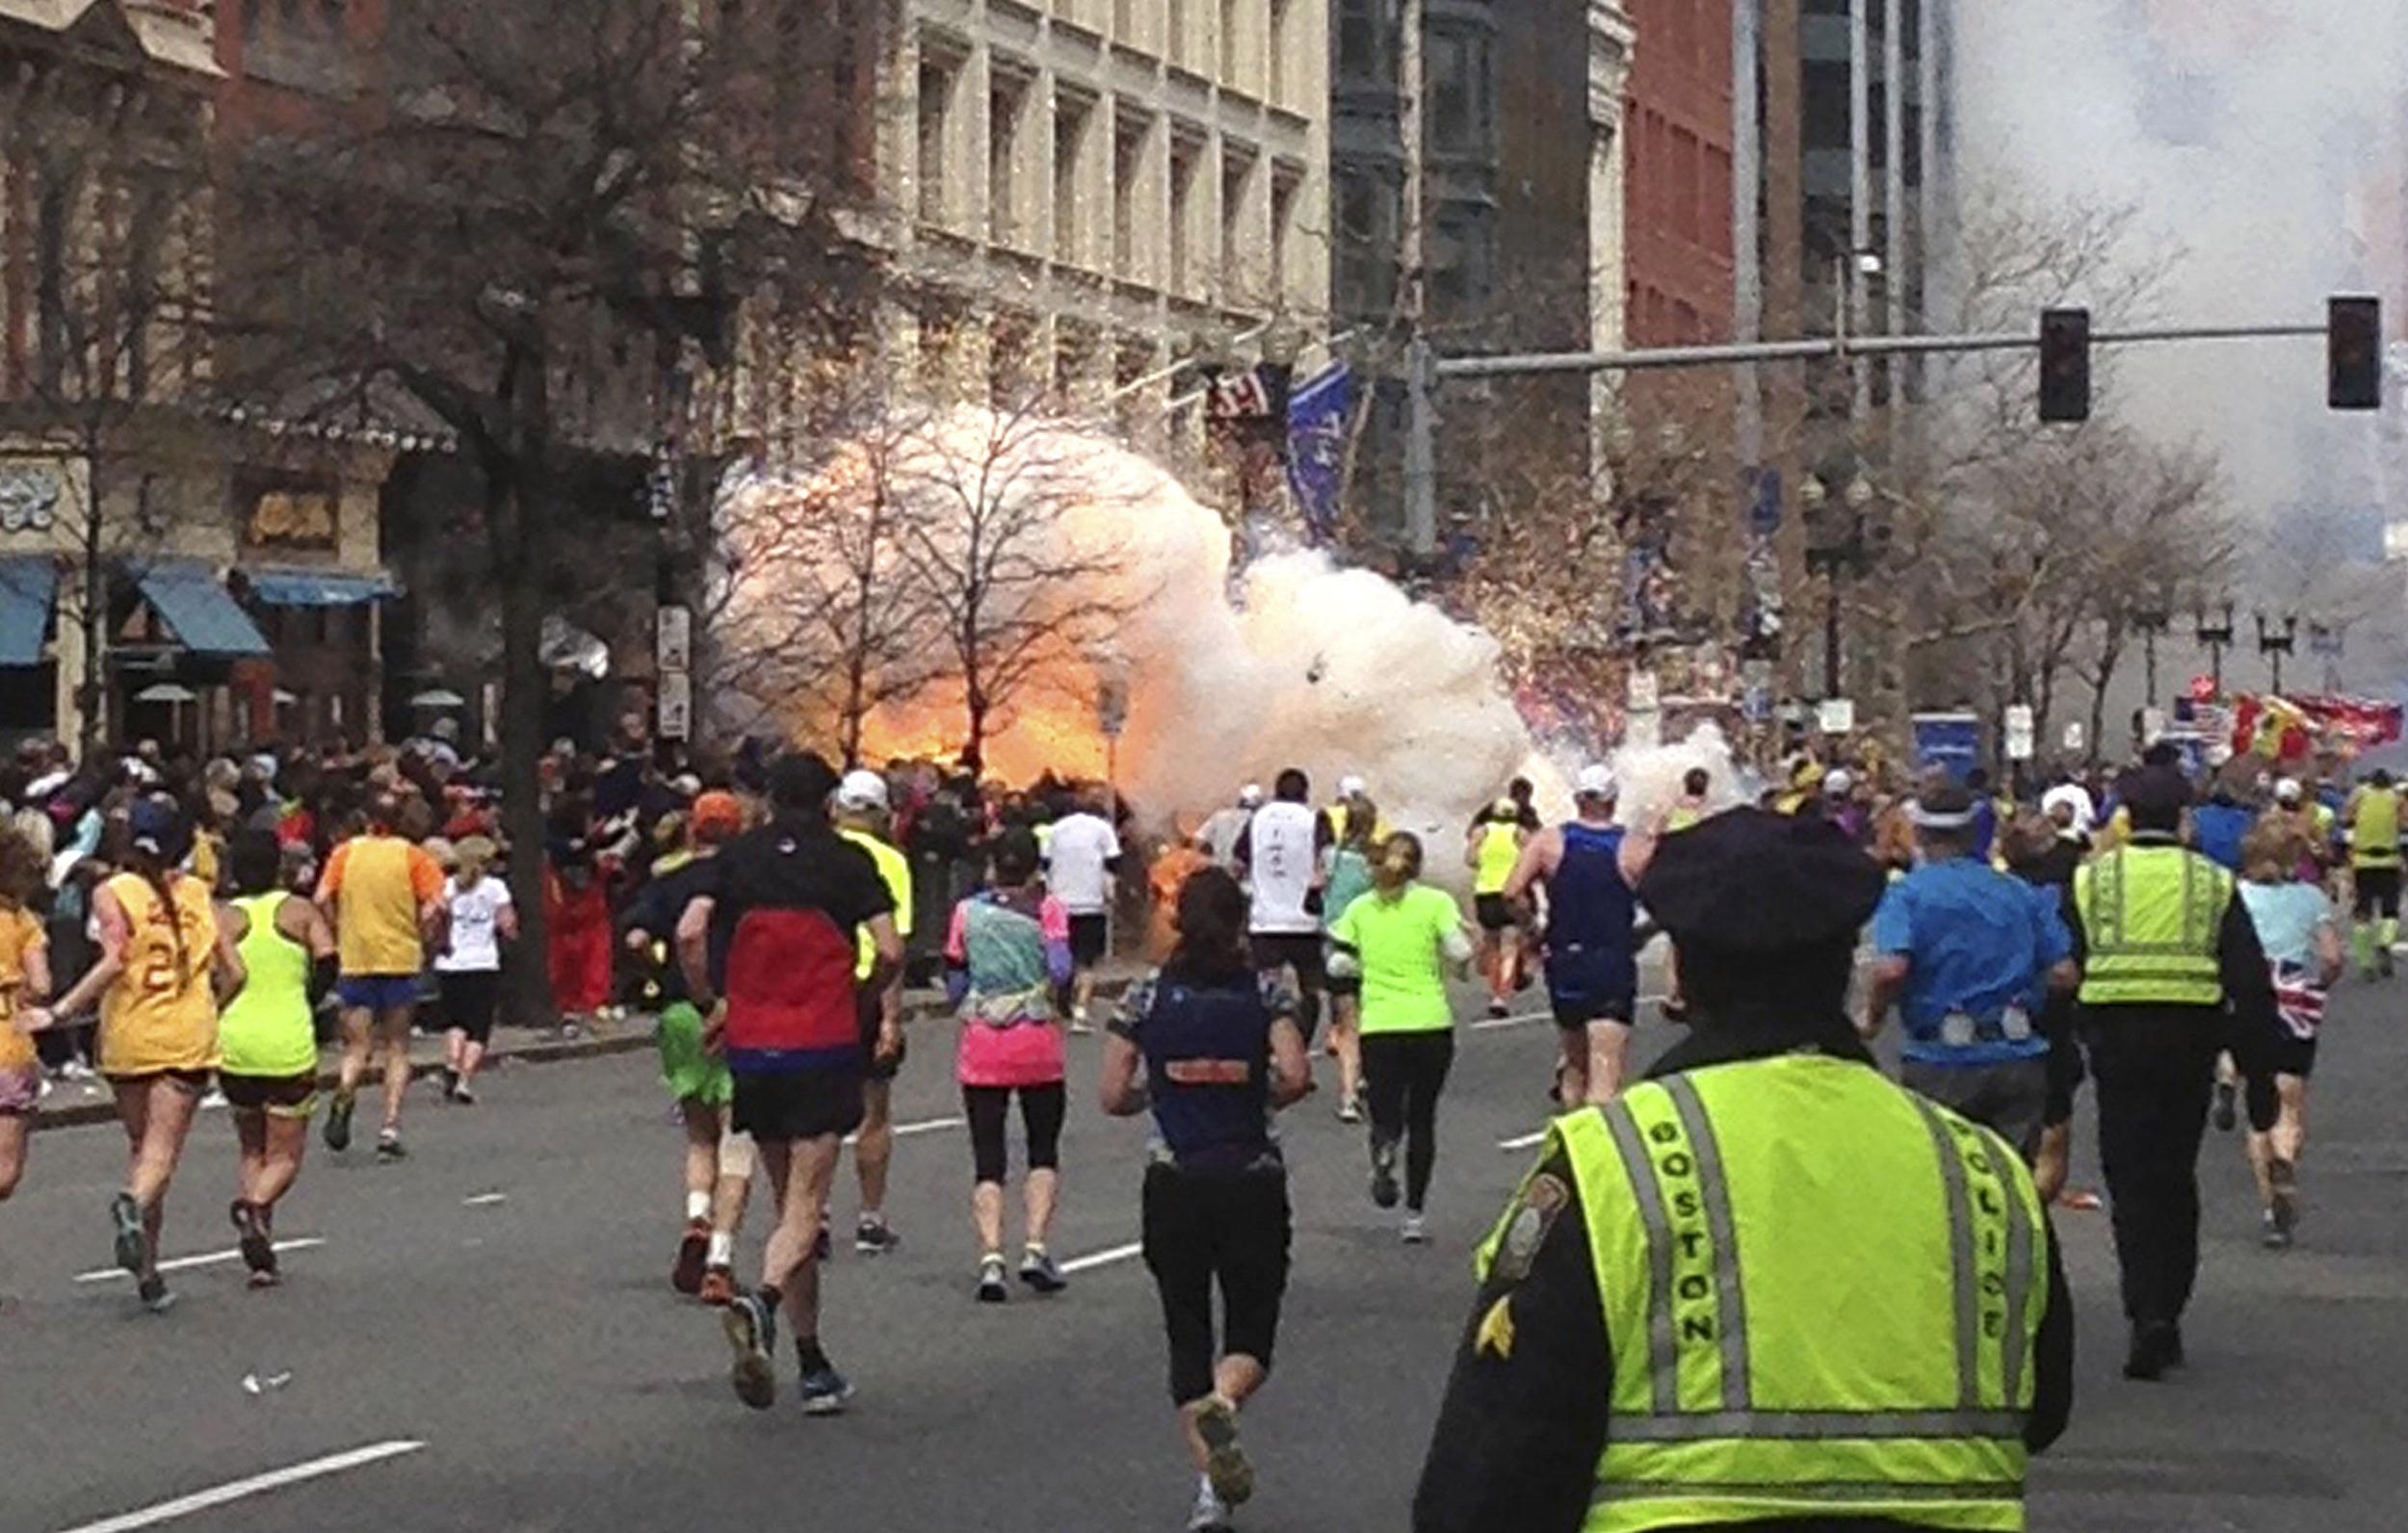 Image: Blast near the finish line of the Boston Marathon